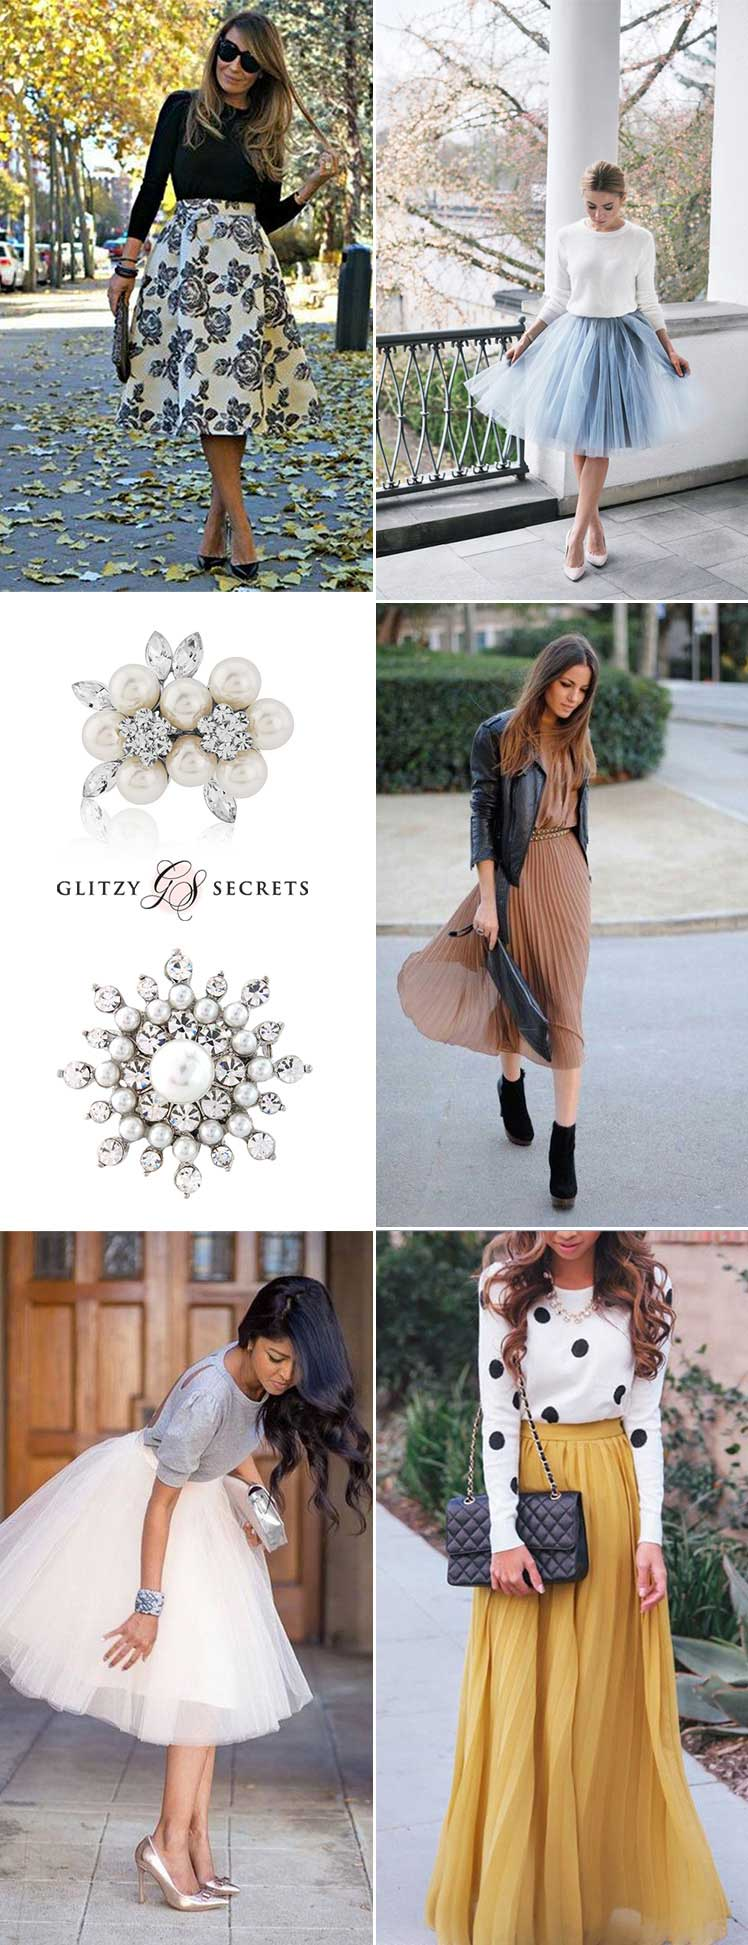 Winter Wedding Guest Outfit Ideas Tips Glitzy Secrets